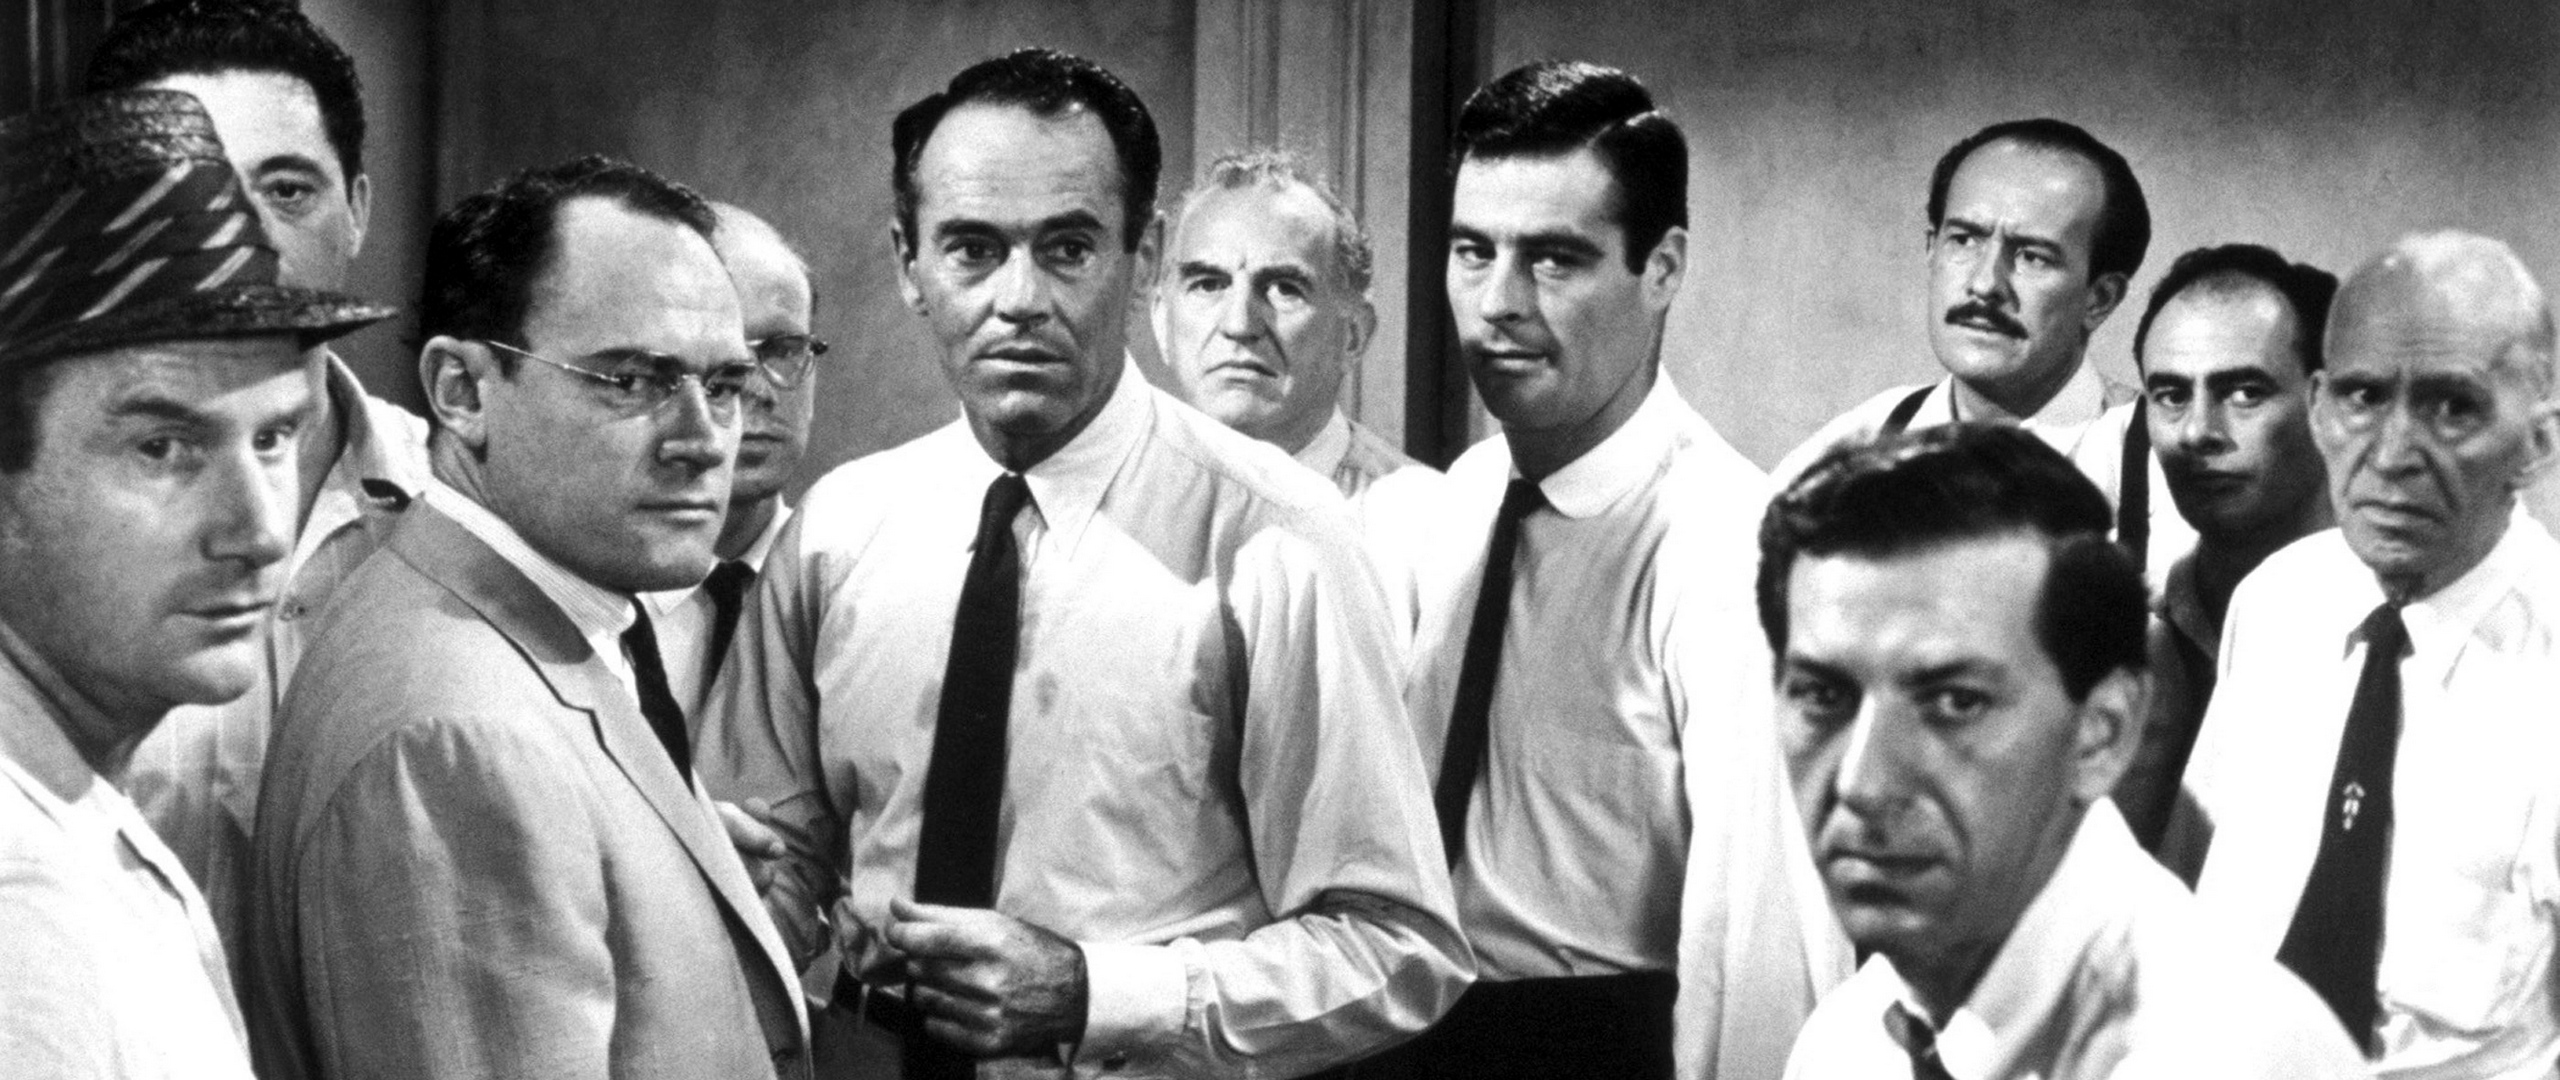 Download wallpaper 2560x1080 12 angry men men actors black 2560x1080